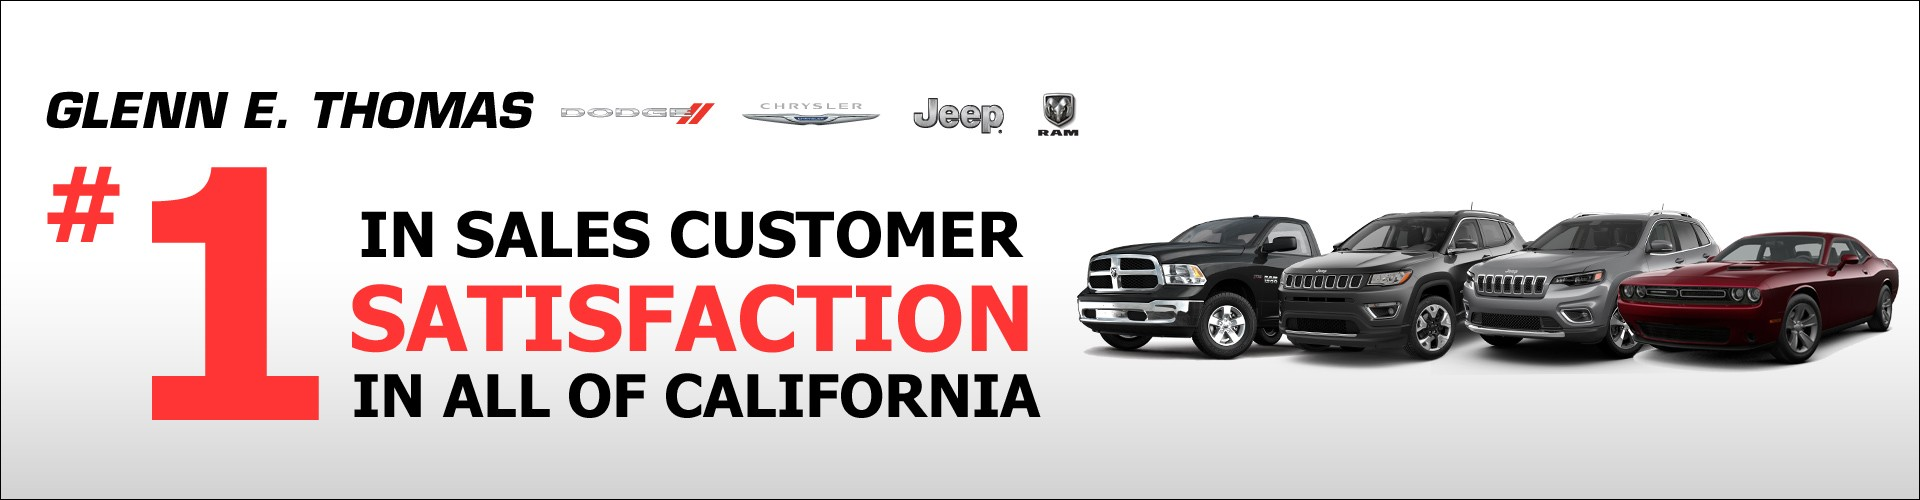 Glenn E. Thomas is number 1 in sales customer satisfaction in all of California.